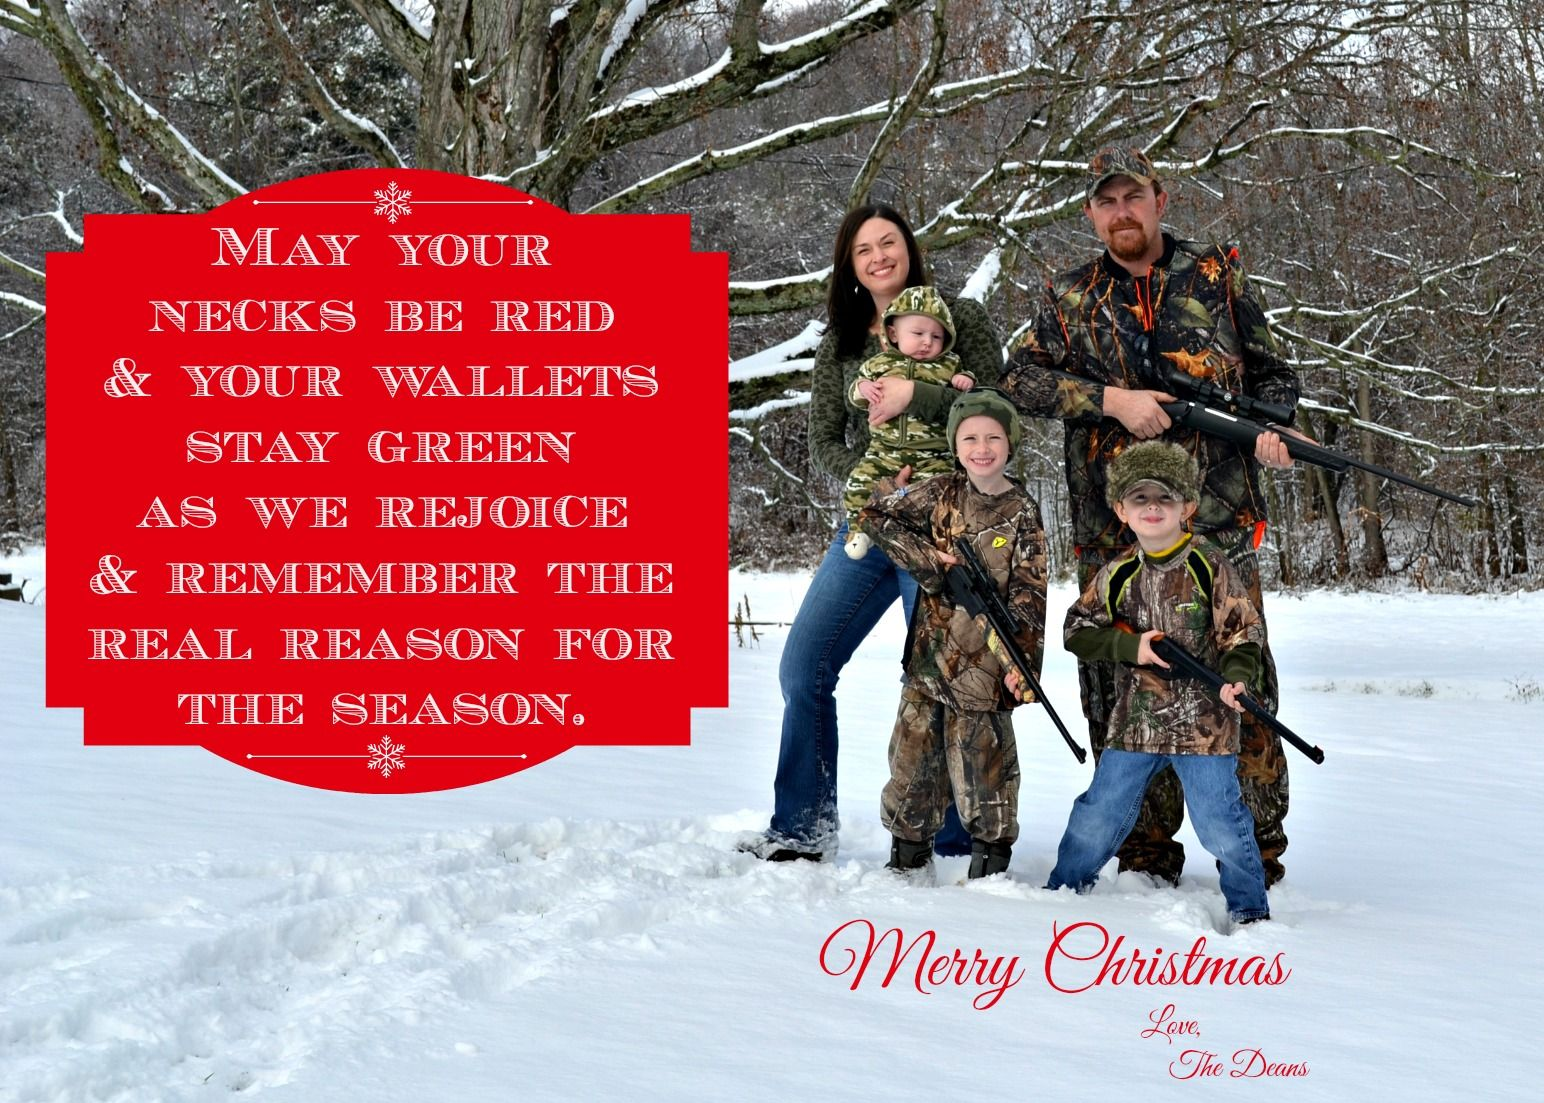 26 Best 12 Days Of Christmas Cards Images On Pinterest 12 Days